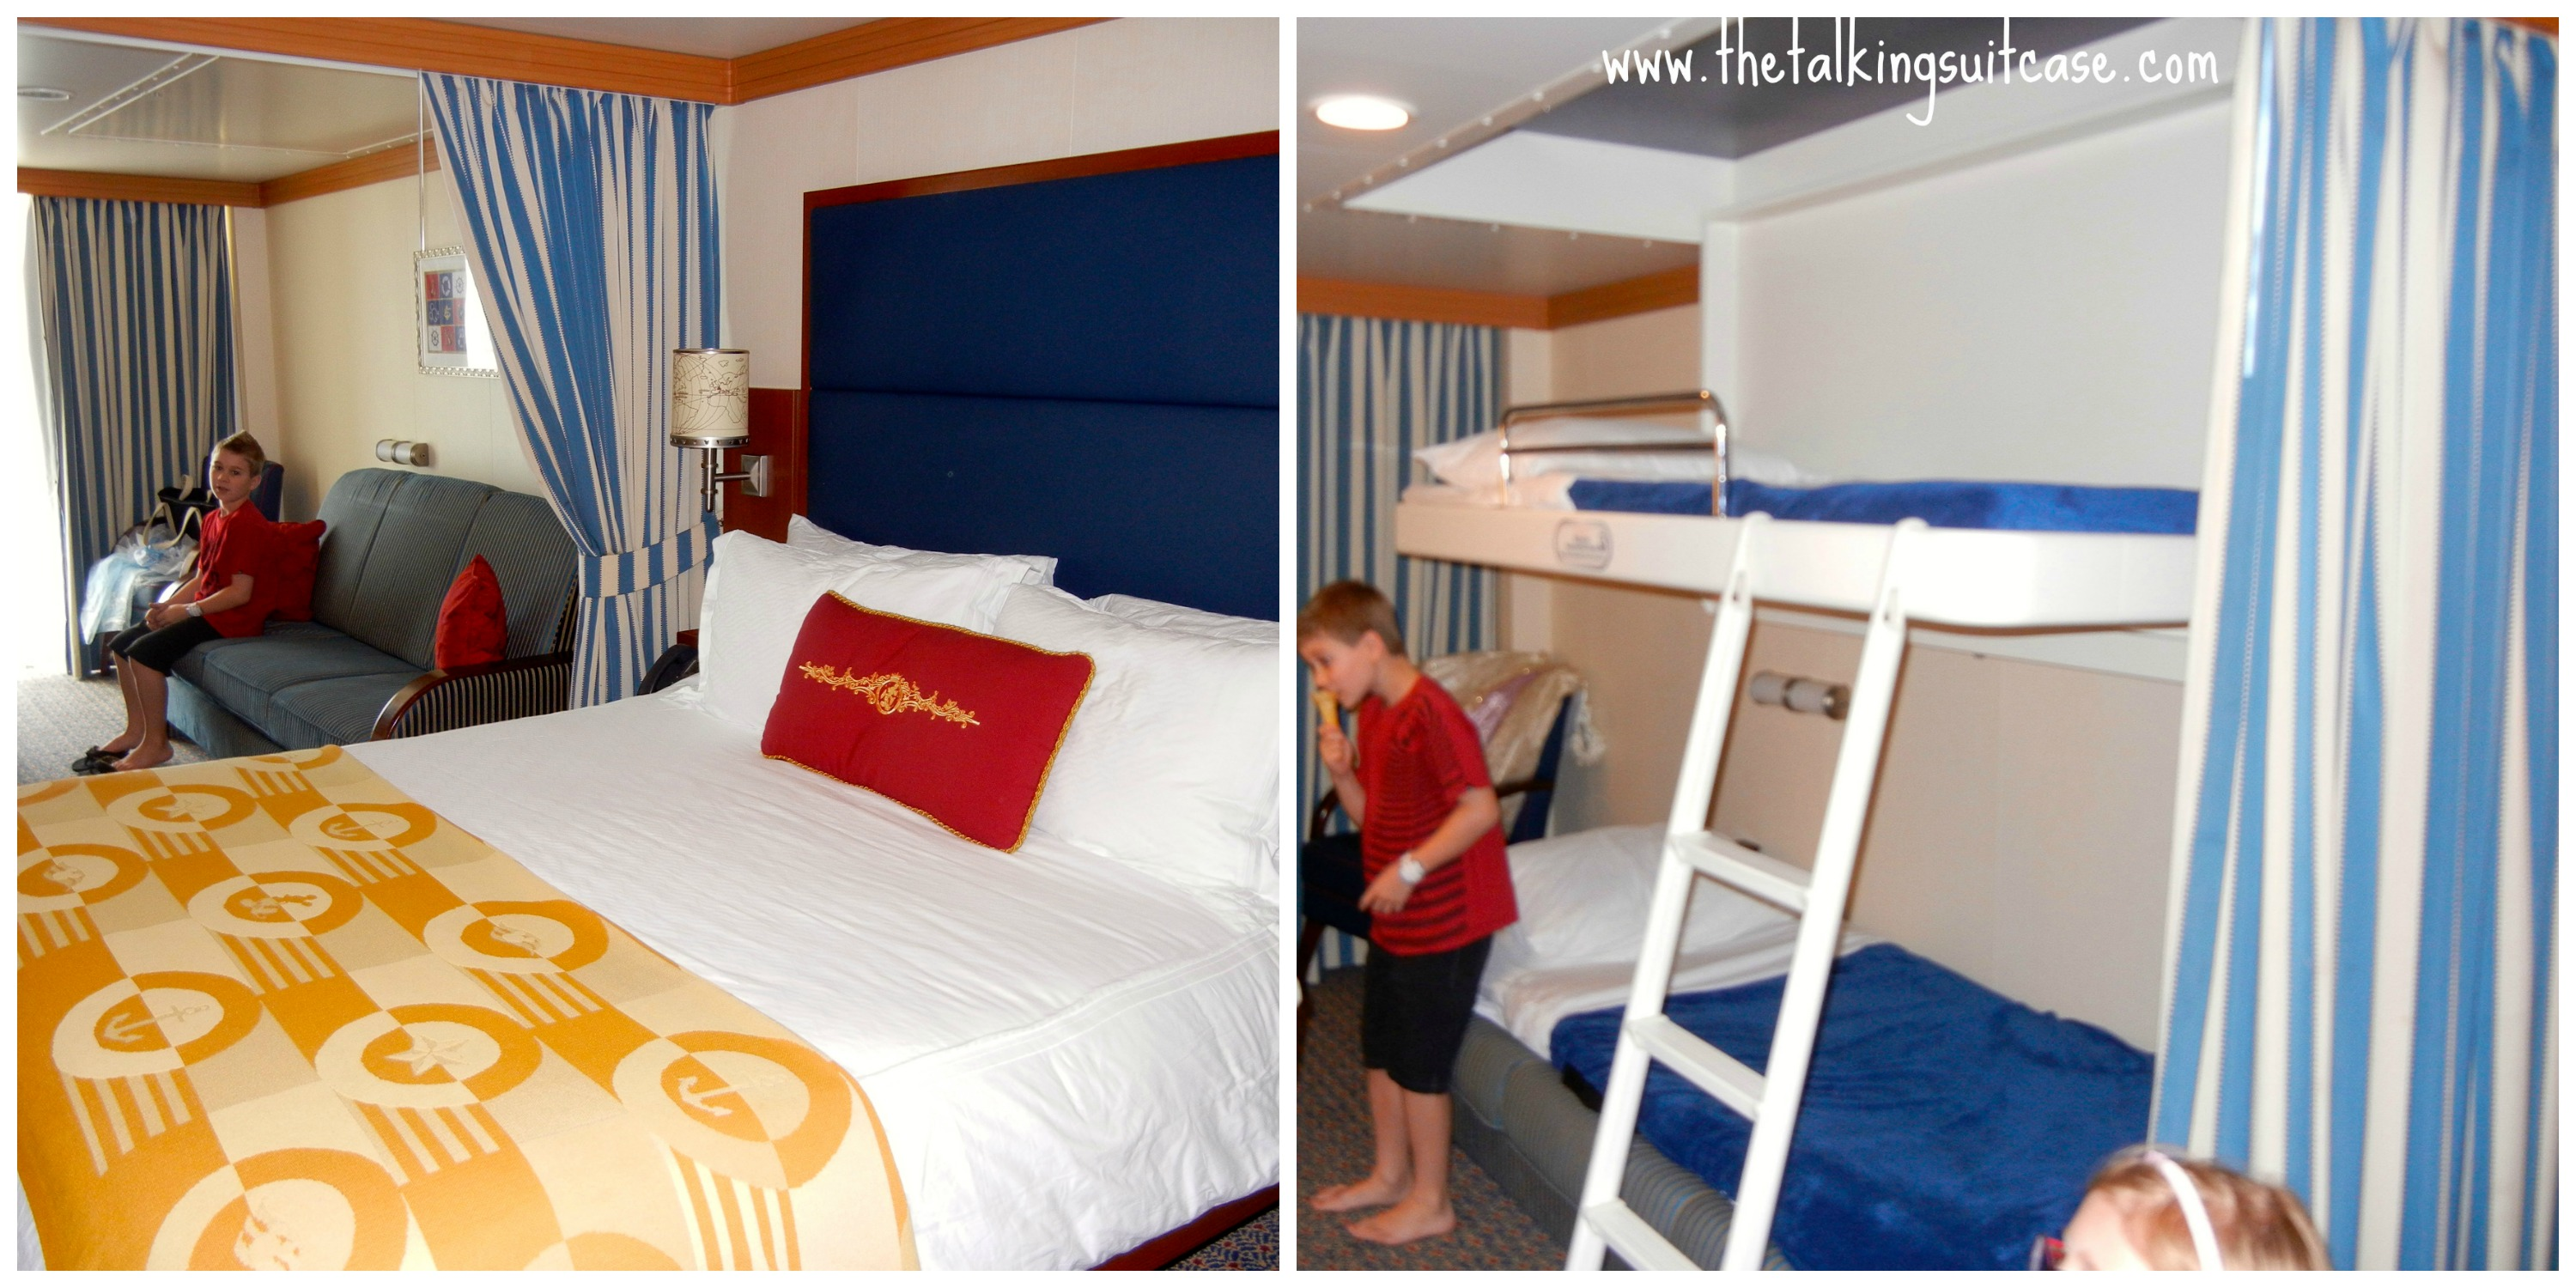 Disney Cruise Rooms I Stateroom On Fantasy